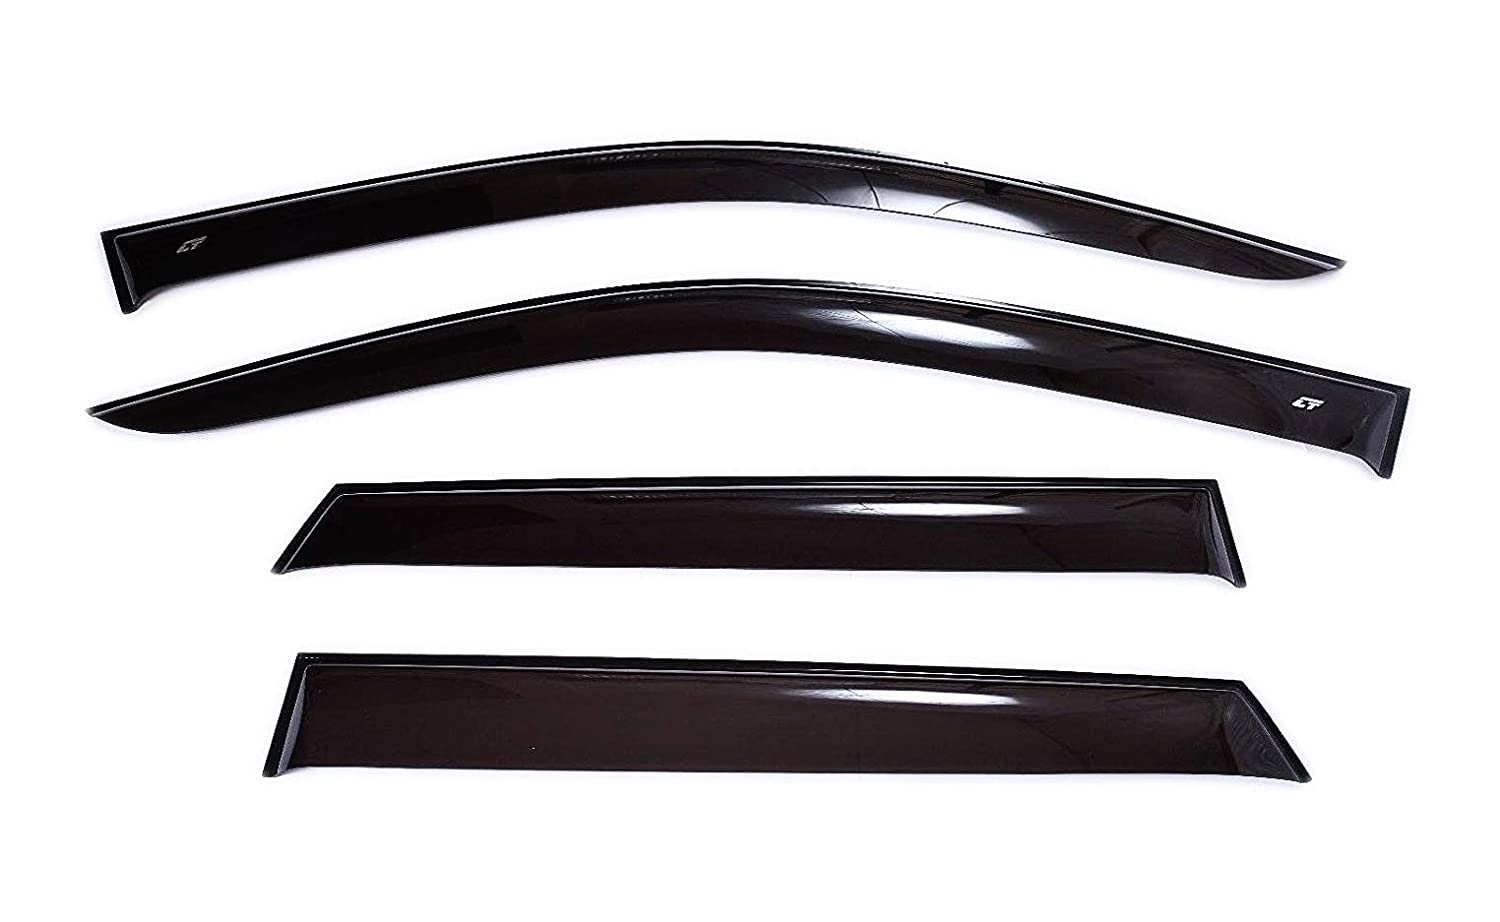 CT Wind Visor Deflectors Set of 4-Piece - Car Ventvisor Door Side -Window Air Guard Deflectors for Protection Against Snow Sun and Rain Compatible with Great Wall Deer G3/G5/Admiral - Dark Smoke